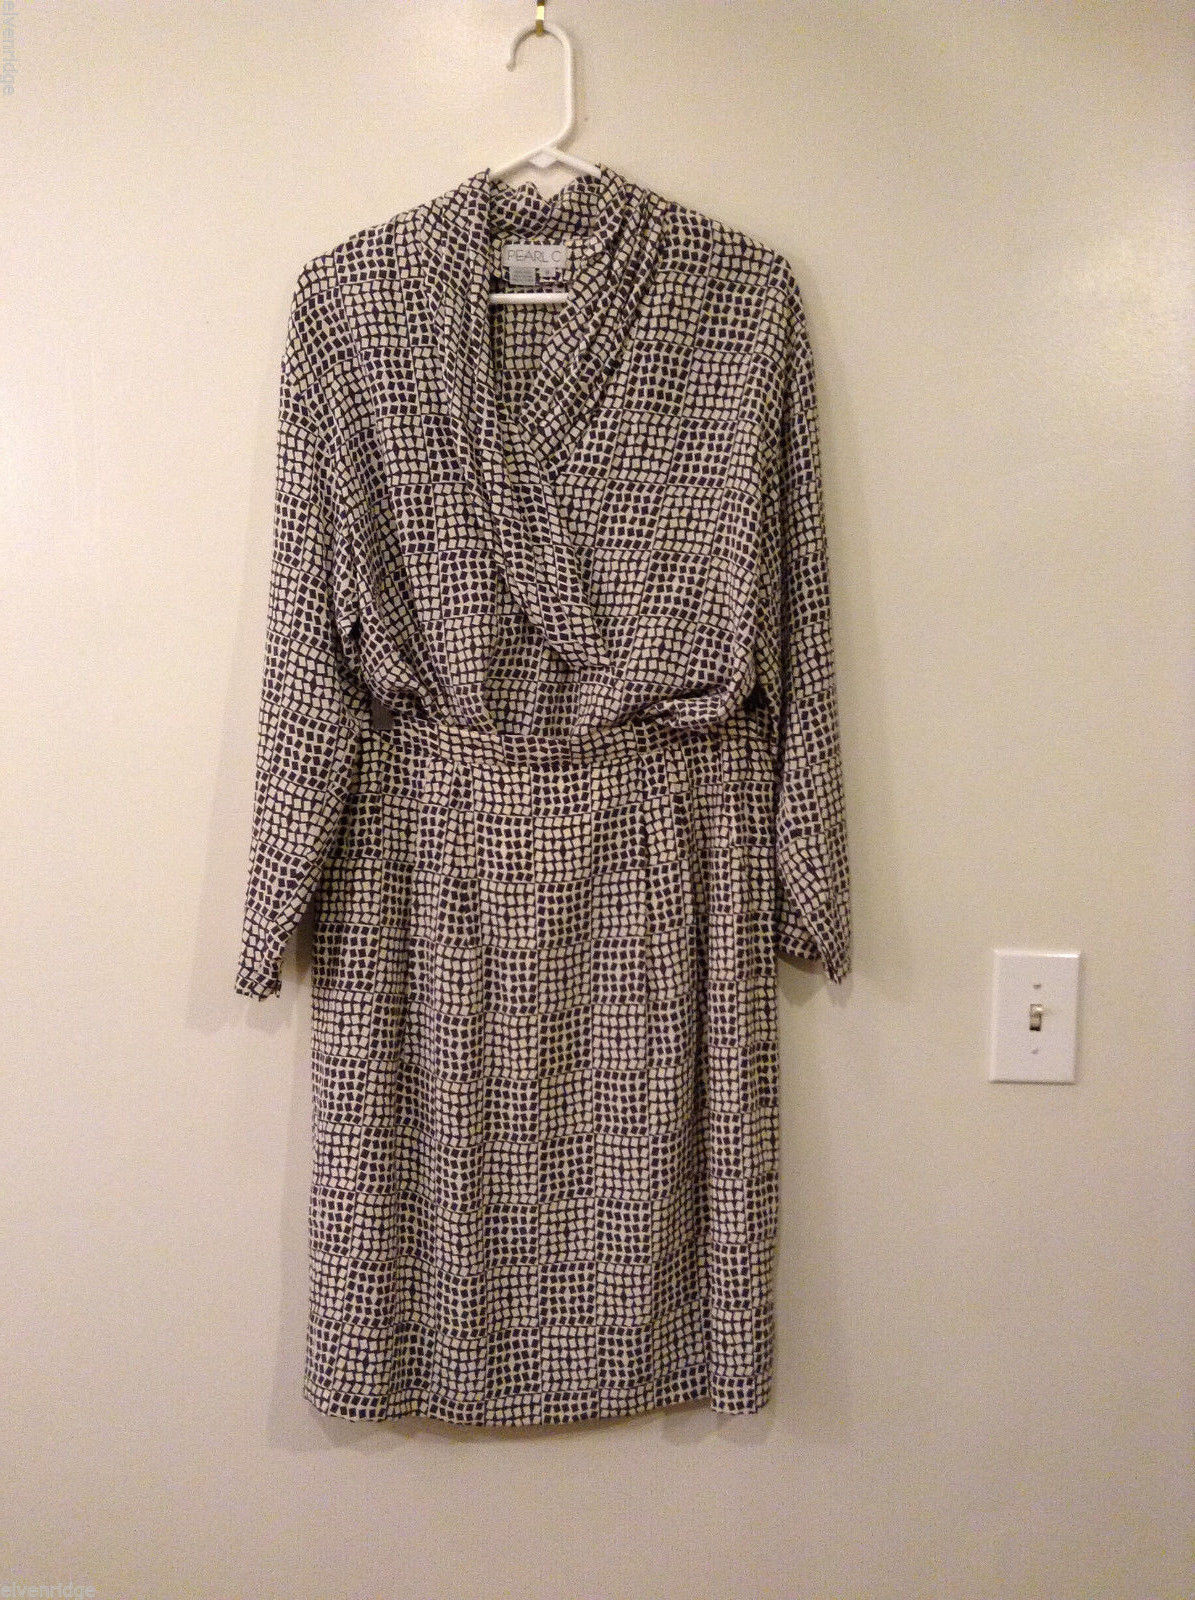 Pearl C 2 piece set Blouse Skirt 100% Silk Gray/ Cream Geometric, Sizes 8, 12